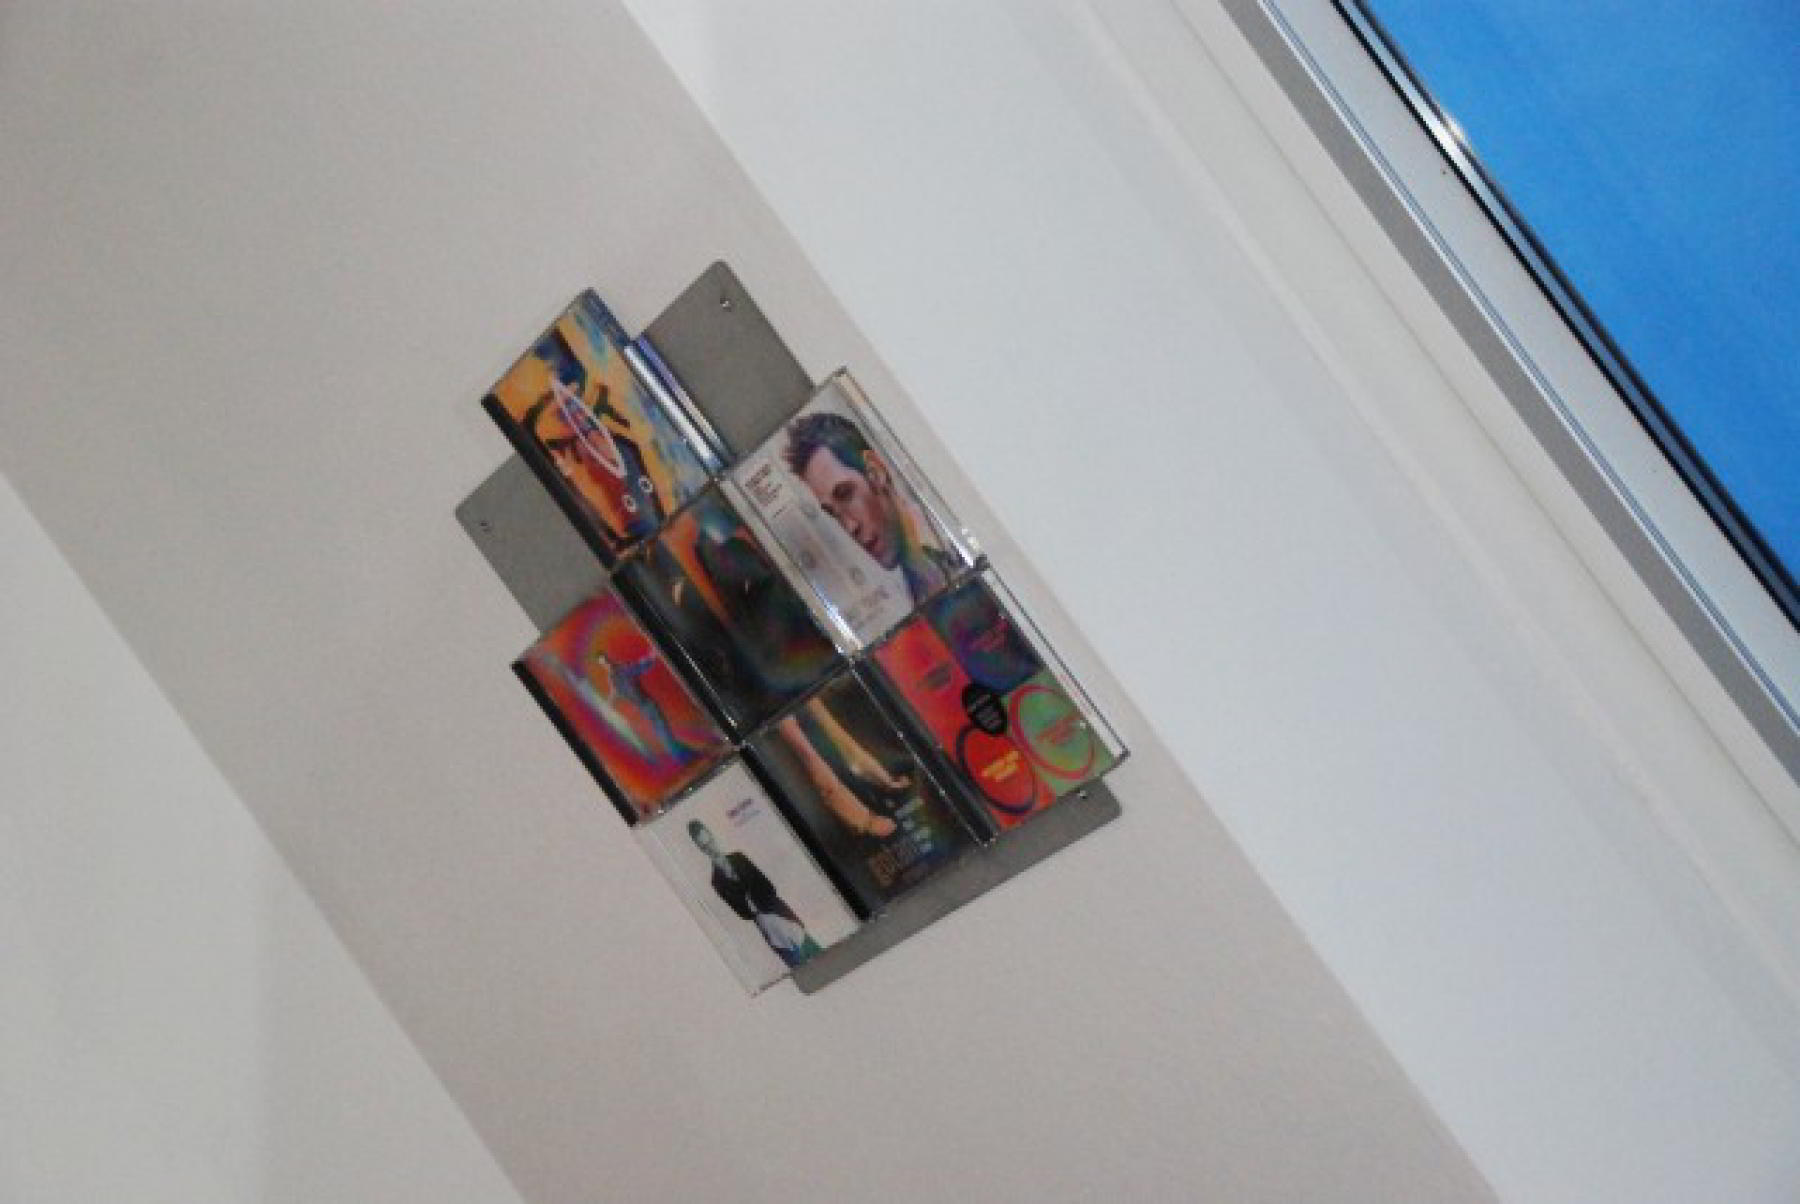 The picture shows the wall-mounted CD on a roof slope